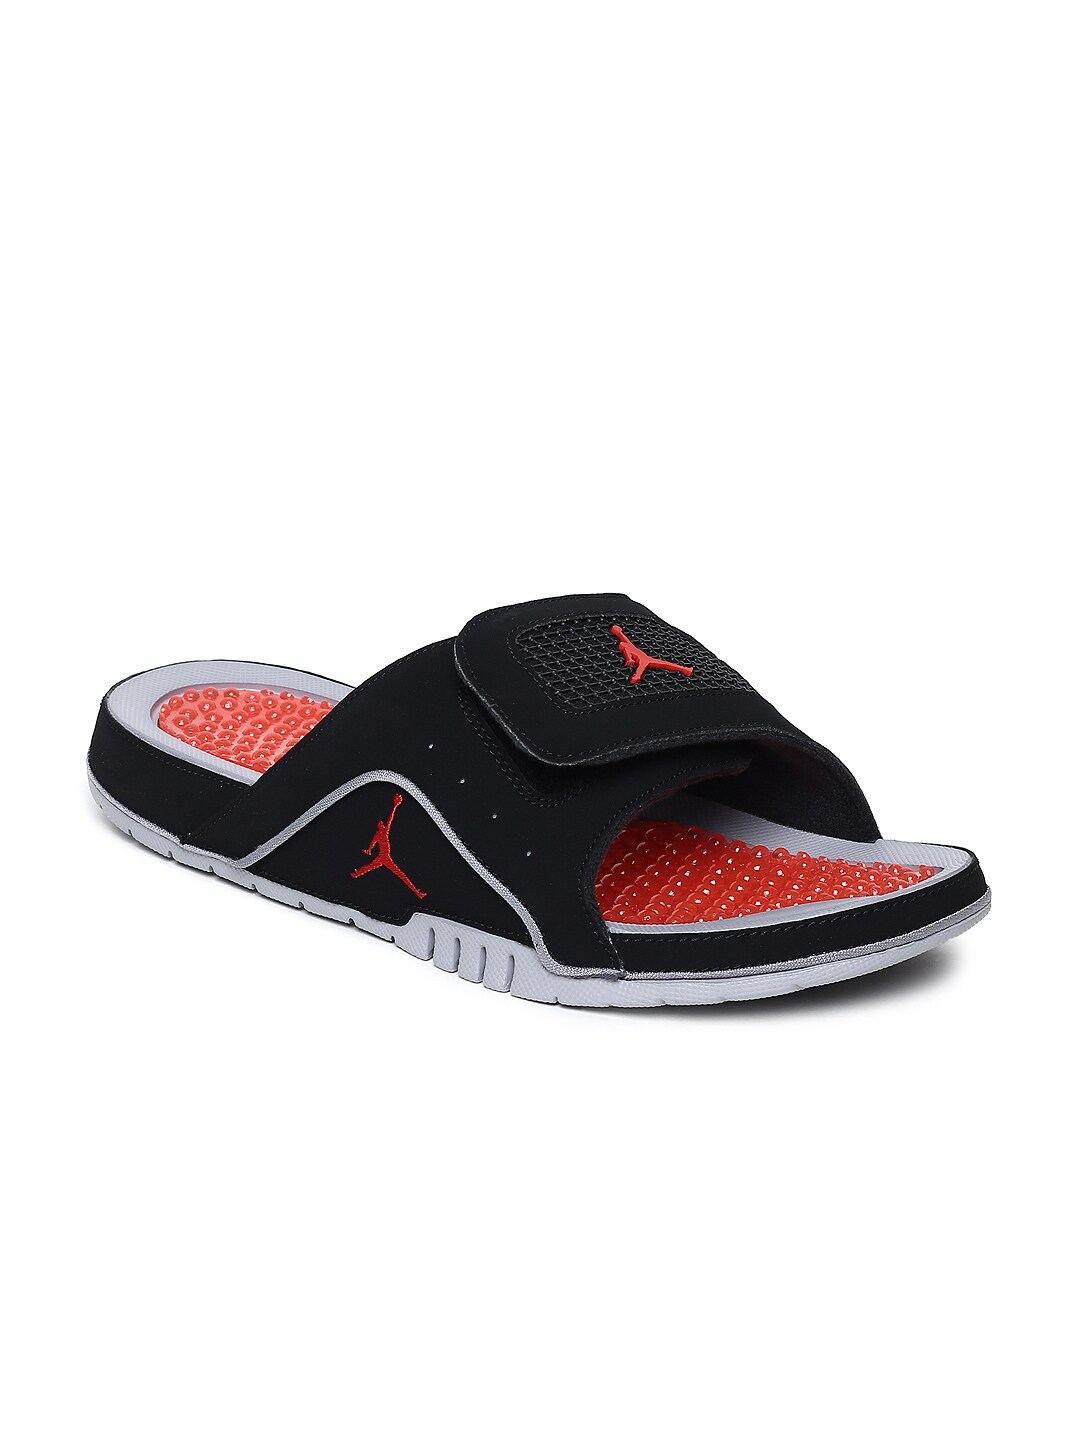 279ca0d849114c Nike Jordan - Buy Original Nike Jordan Products Online